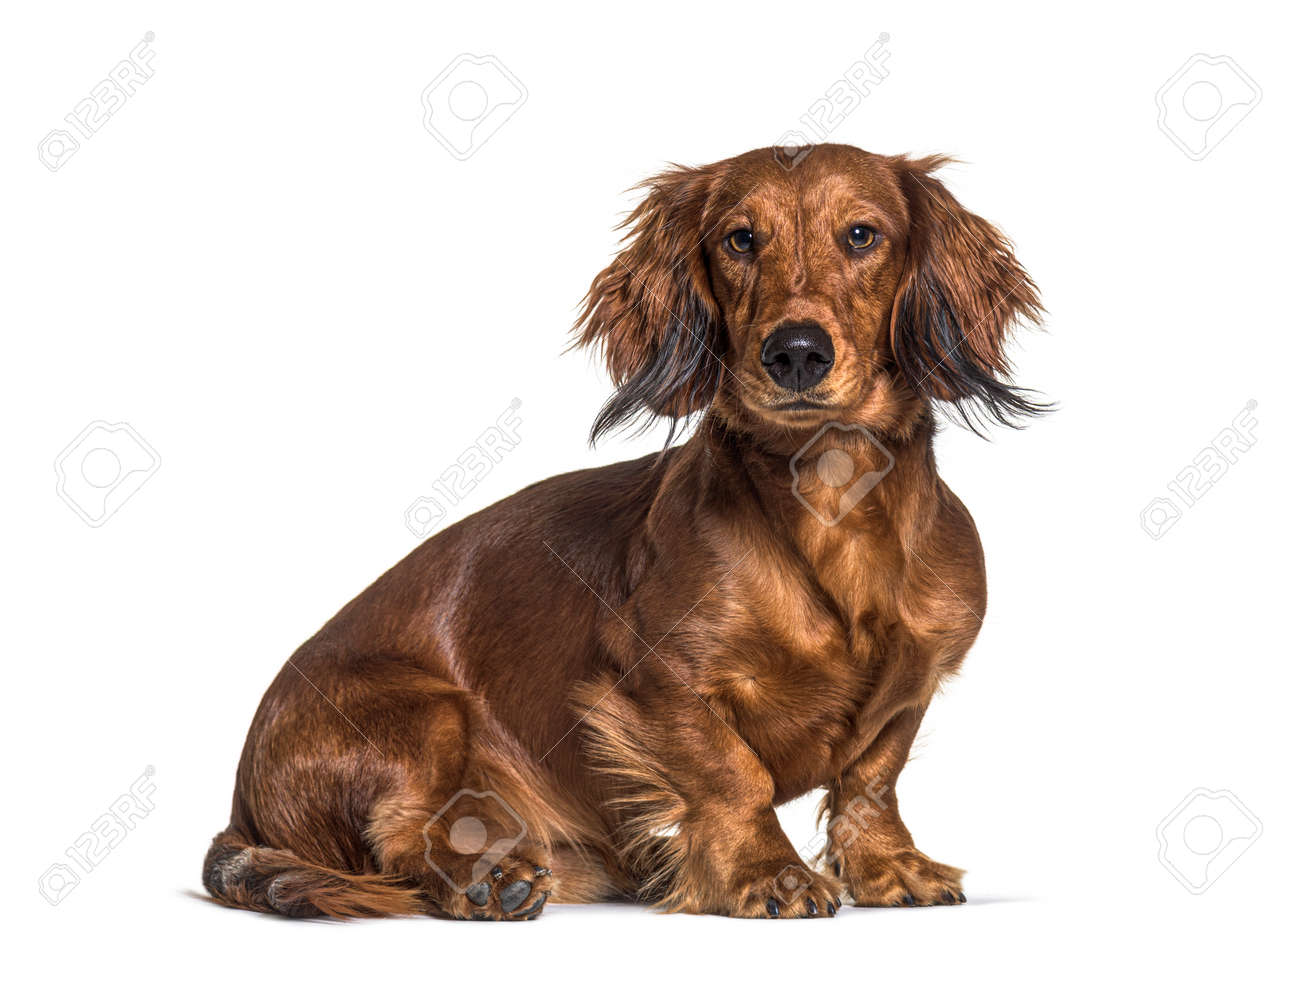 Sitting dachshund looking at the camera isolated on white - 171049341